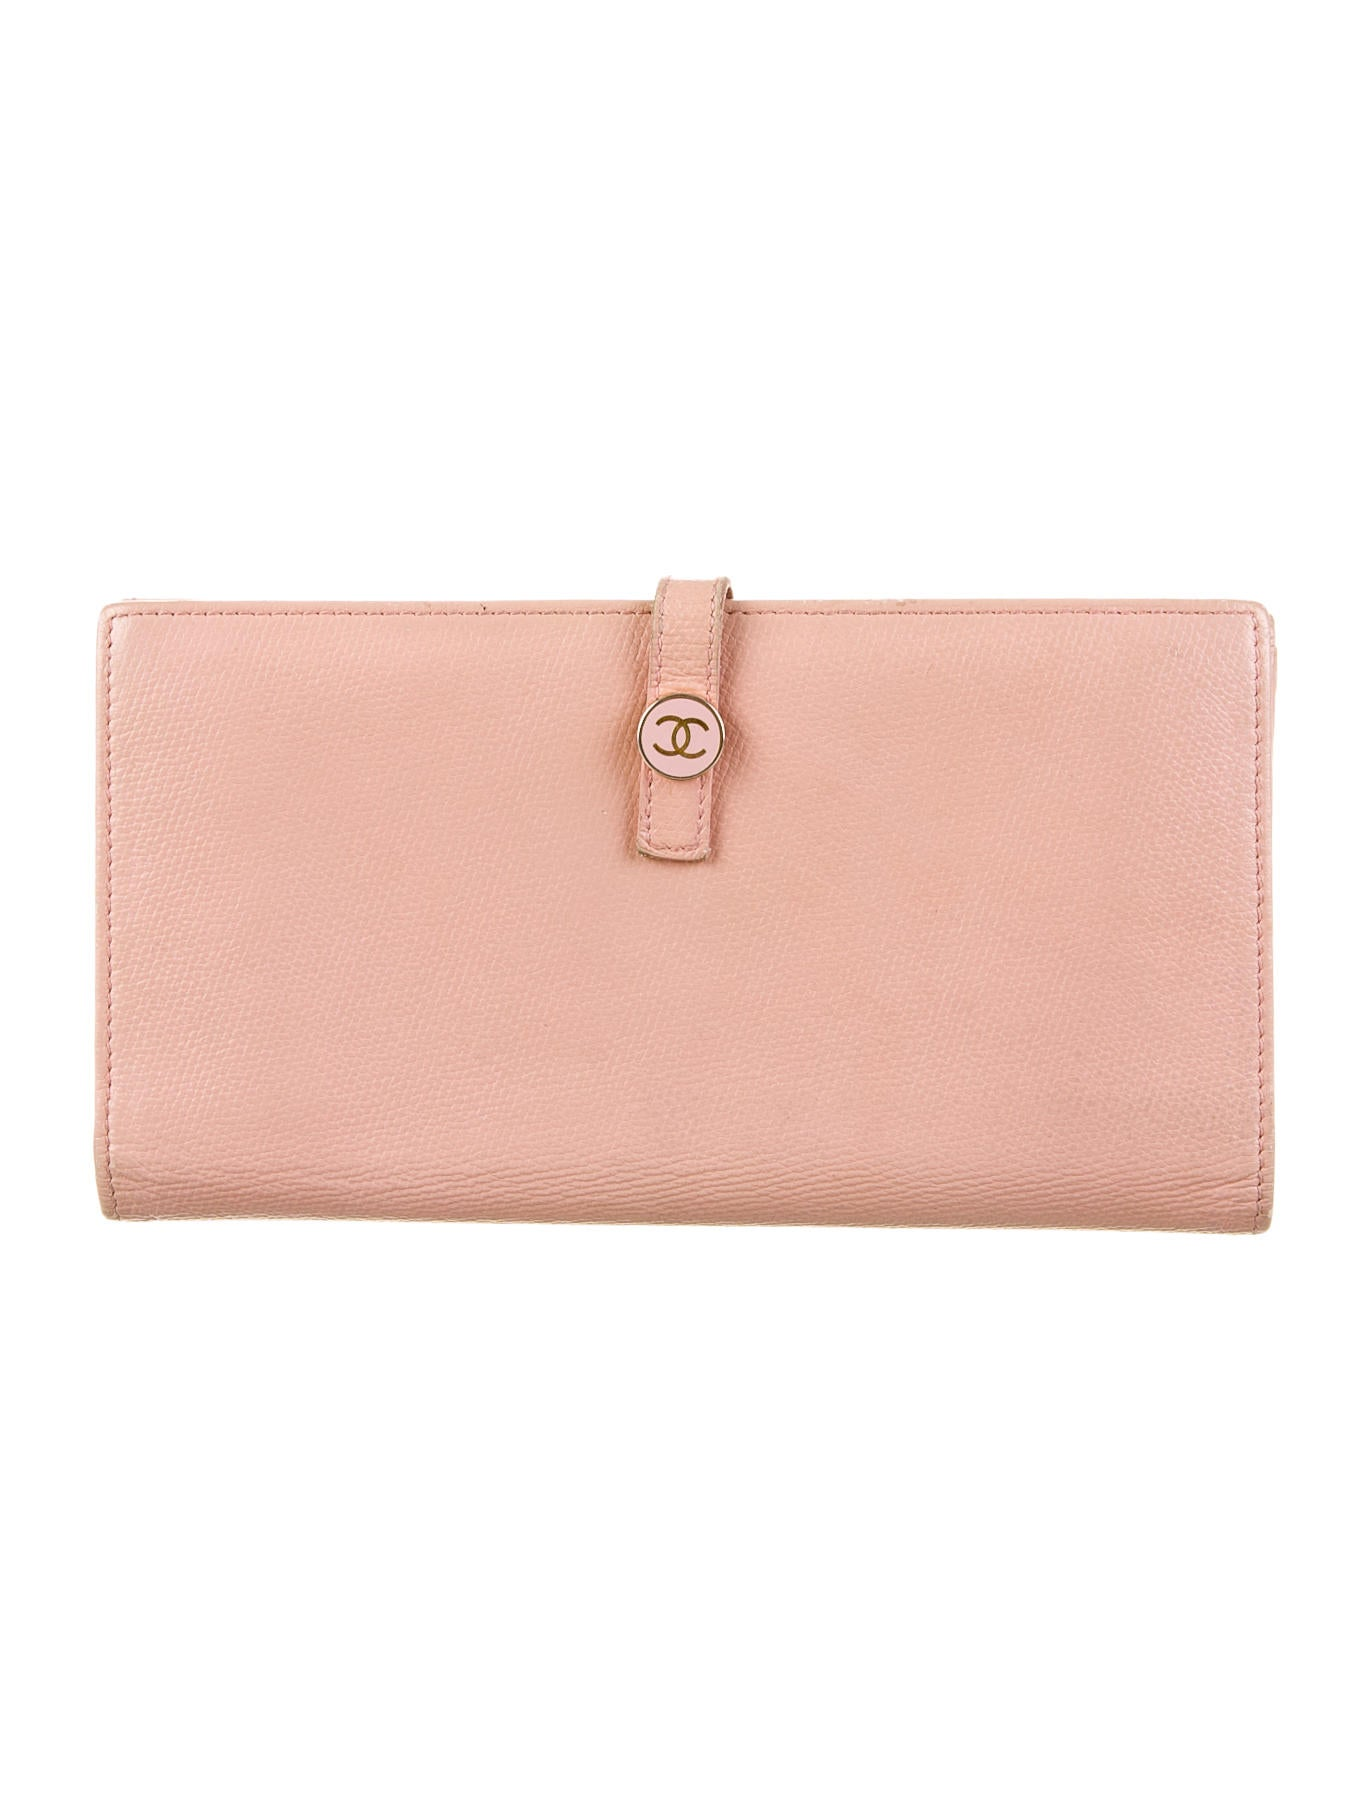 chanel wallet accessories cha62866 the realreal